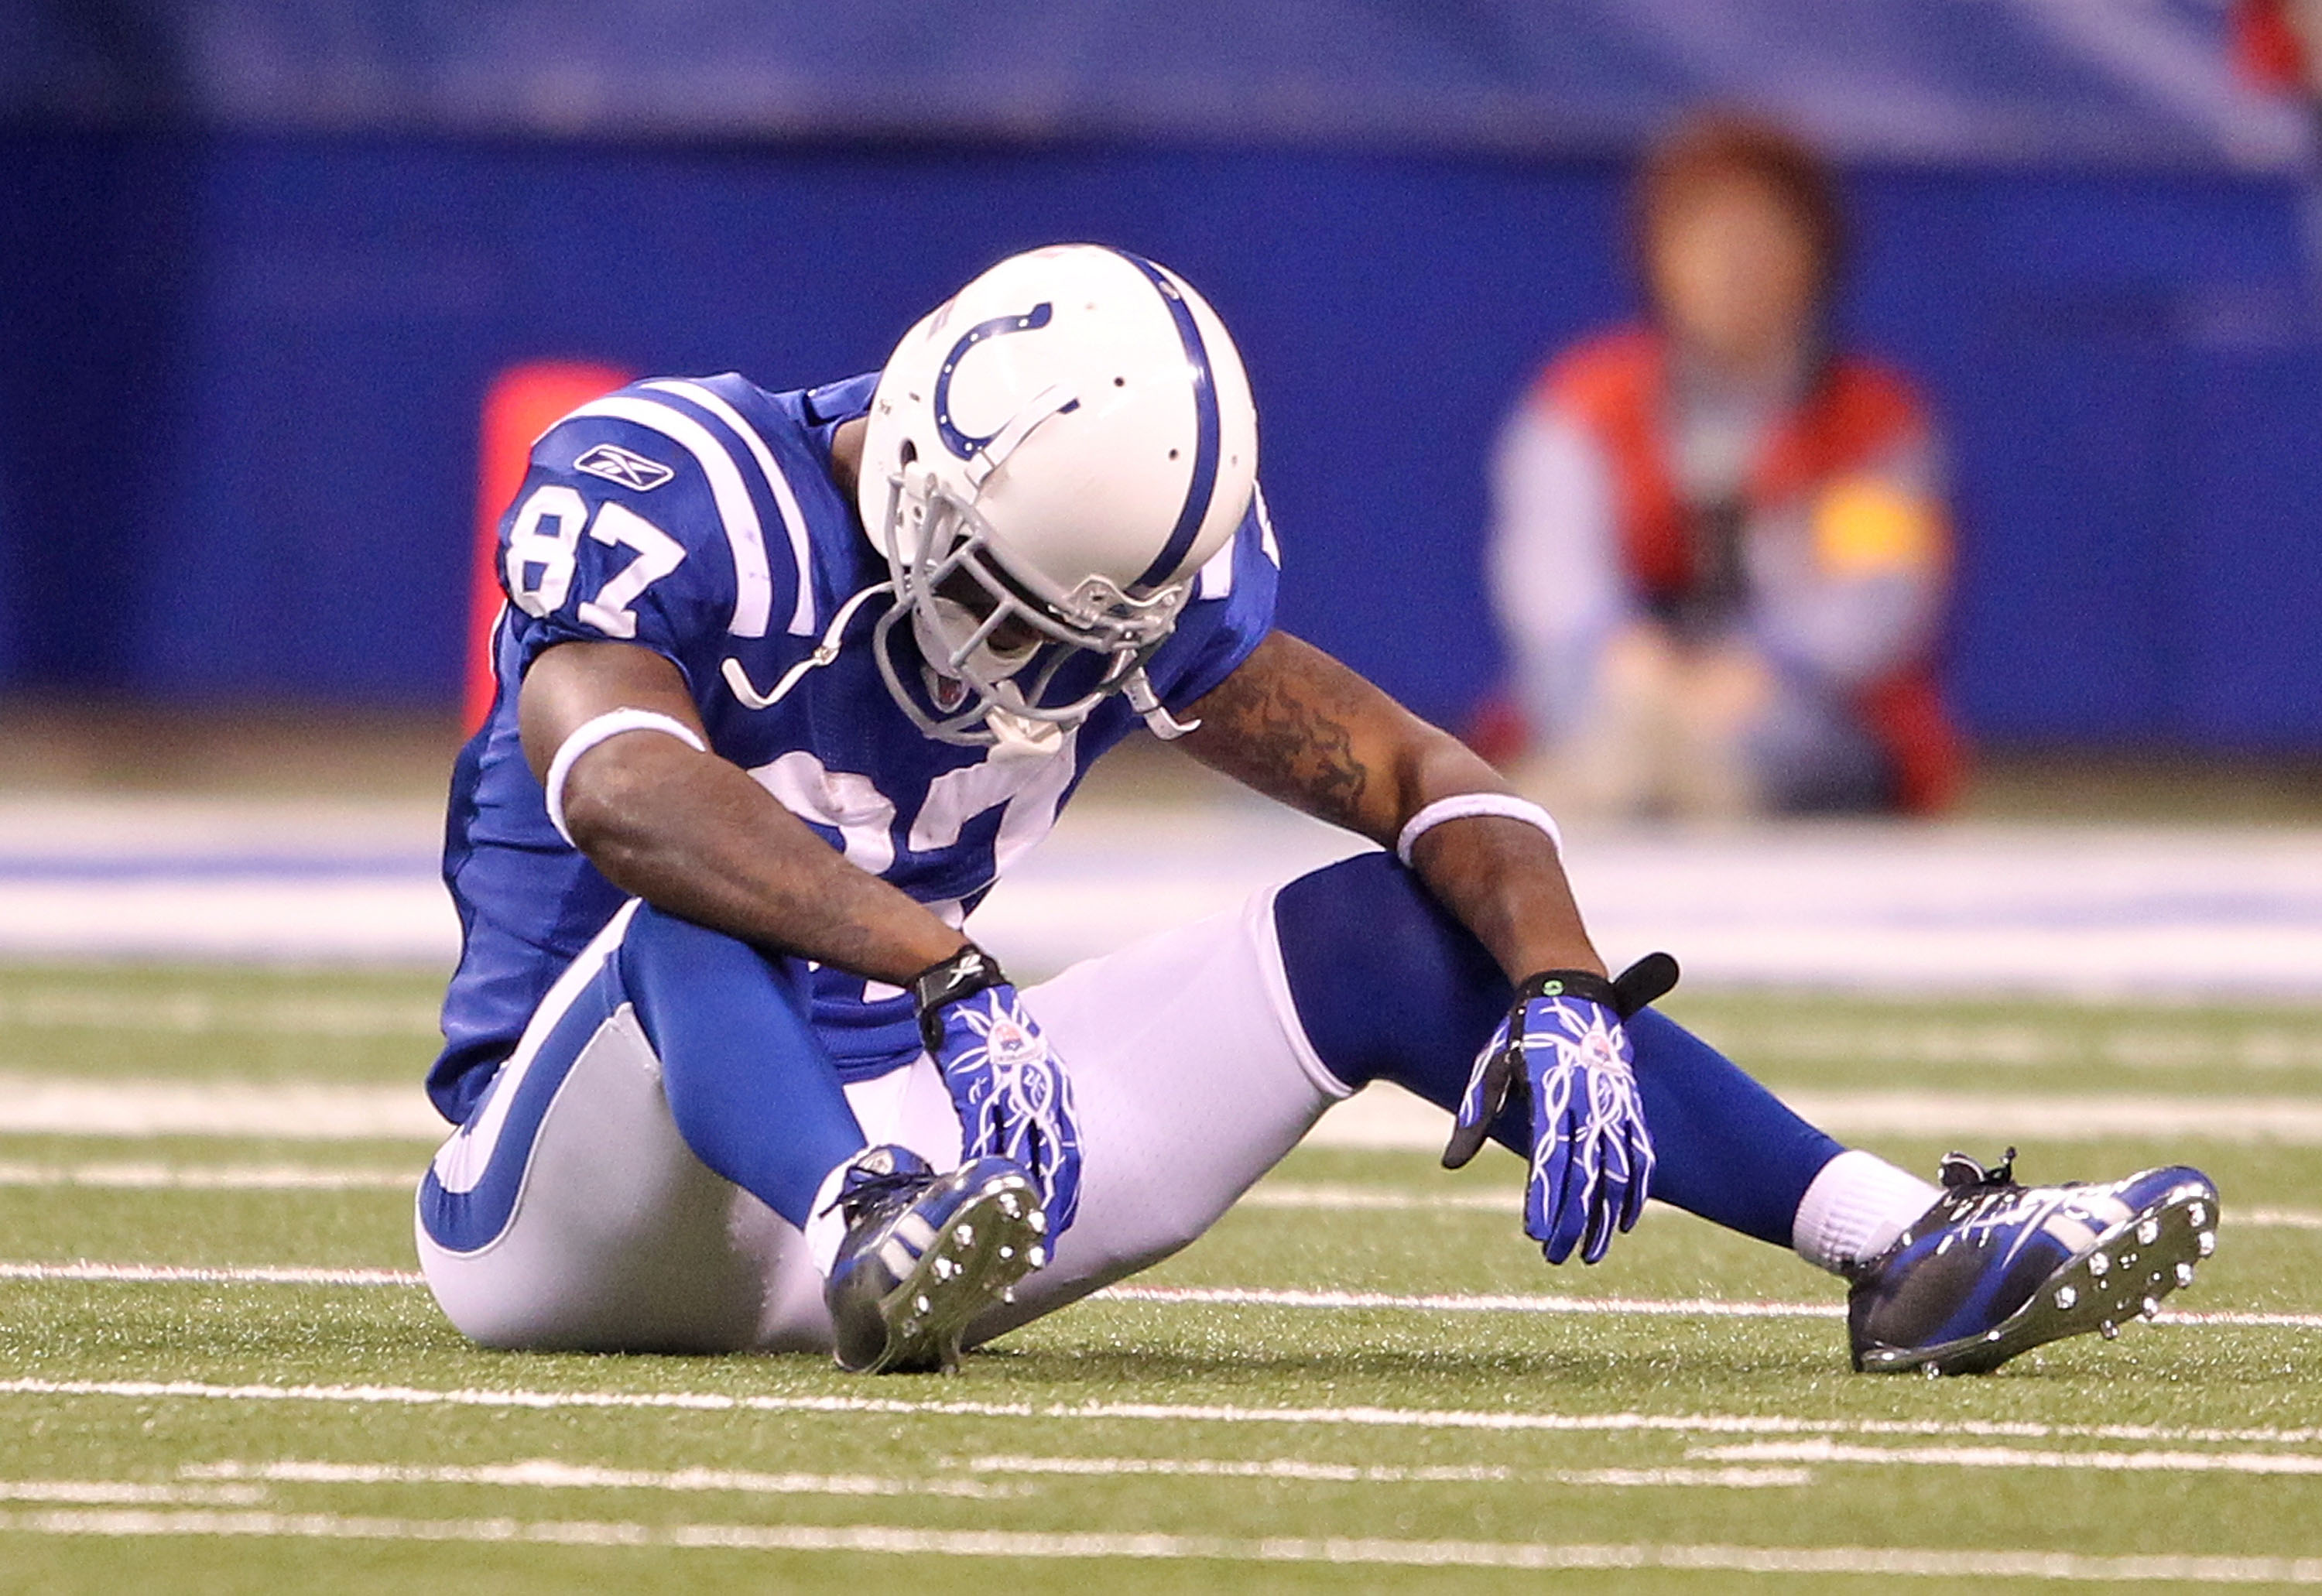 INDIANAPOLIS - NOVEMBER 28:  Reggie Wayne #87 of the Indianapolis Colts sits on the field after dropping a pass during the NFL game against the San Diego Chargers at Lucas Oil Stadium on November 28, 2010 in Indianapolis, Indiana. The chargers won 36-14.